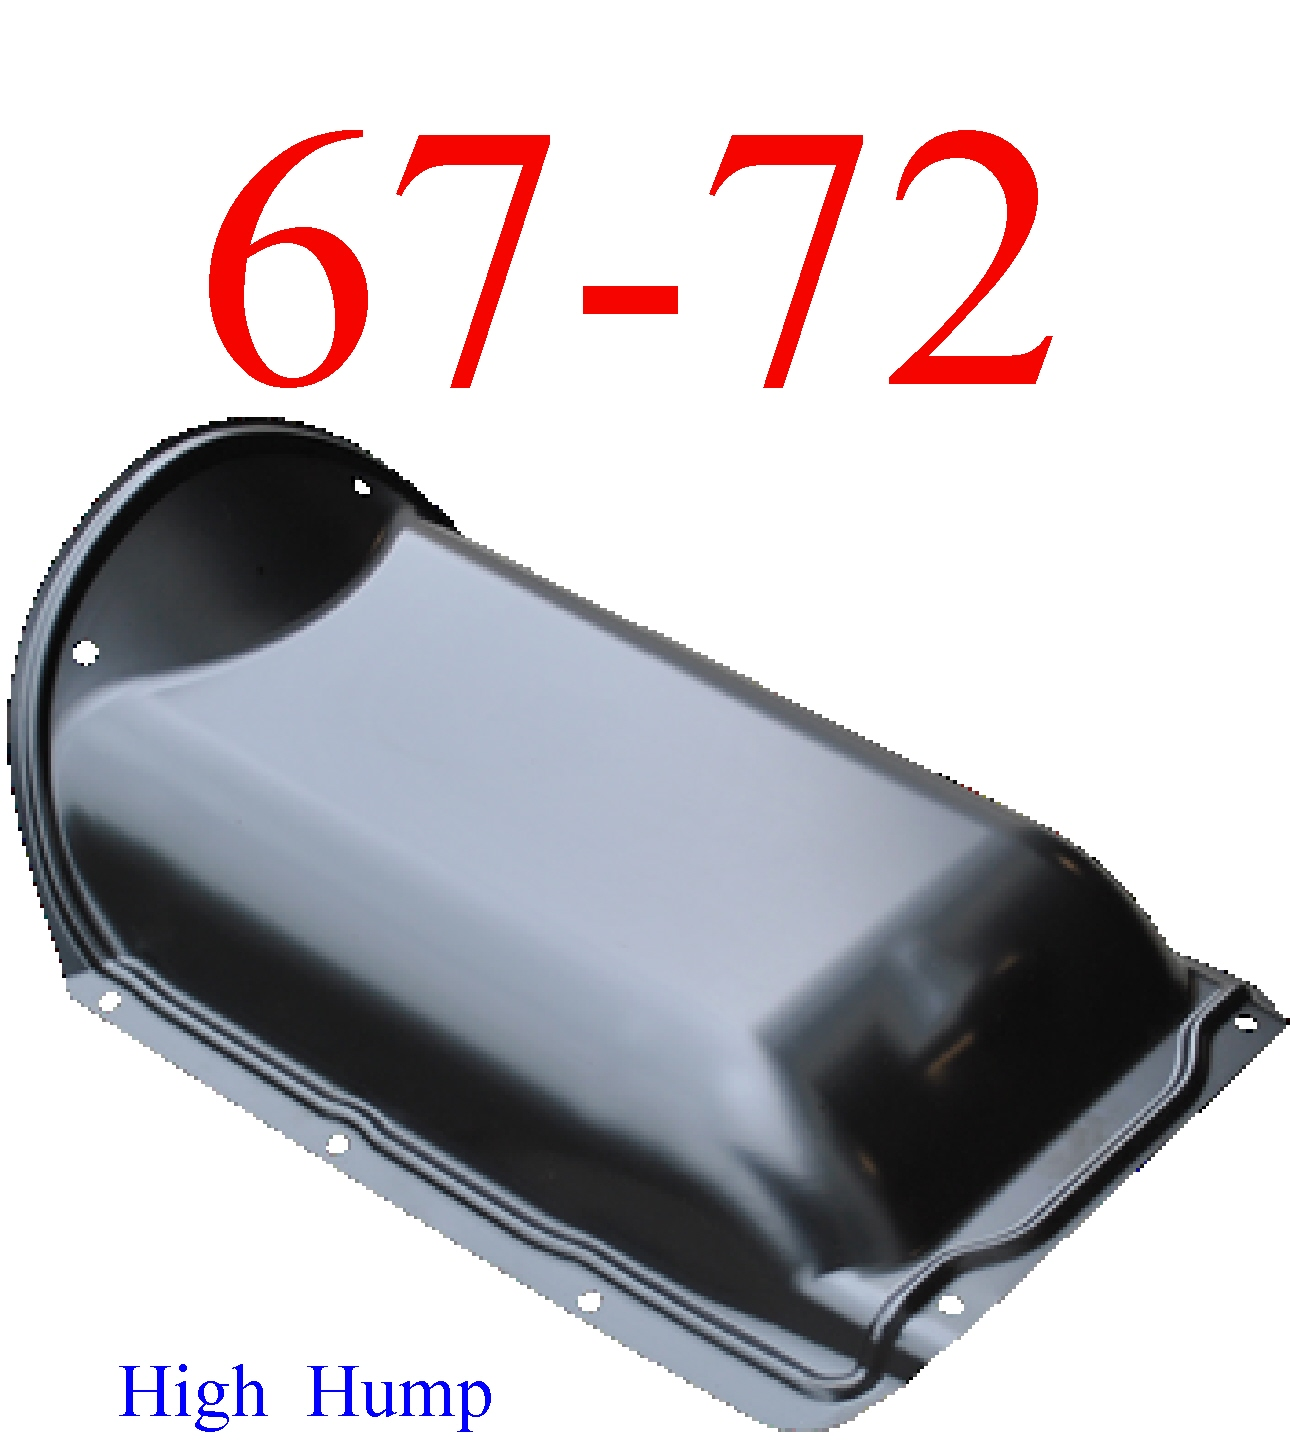 67-72 Chevy High Hump Transmission Cover, MrTailLight.com Online Store